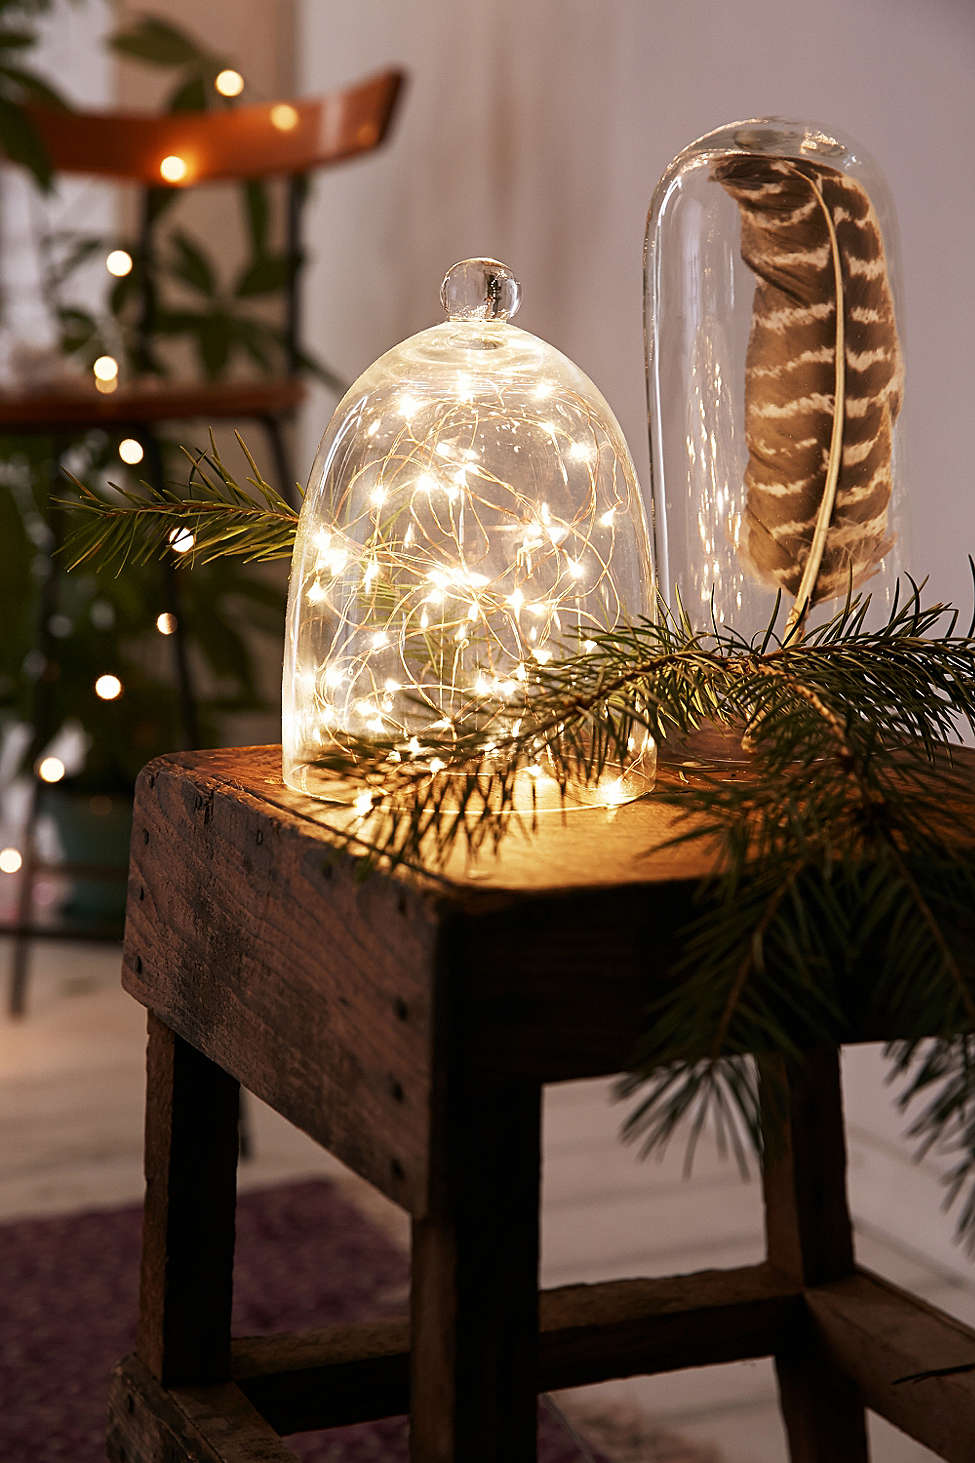 a terrarium is storing glowing holiday decoration string lights on a wooden table in a small